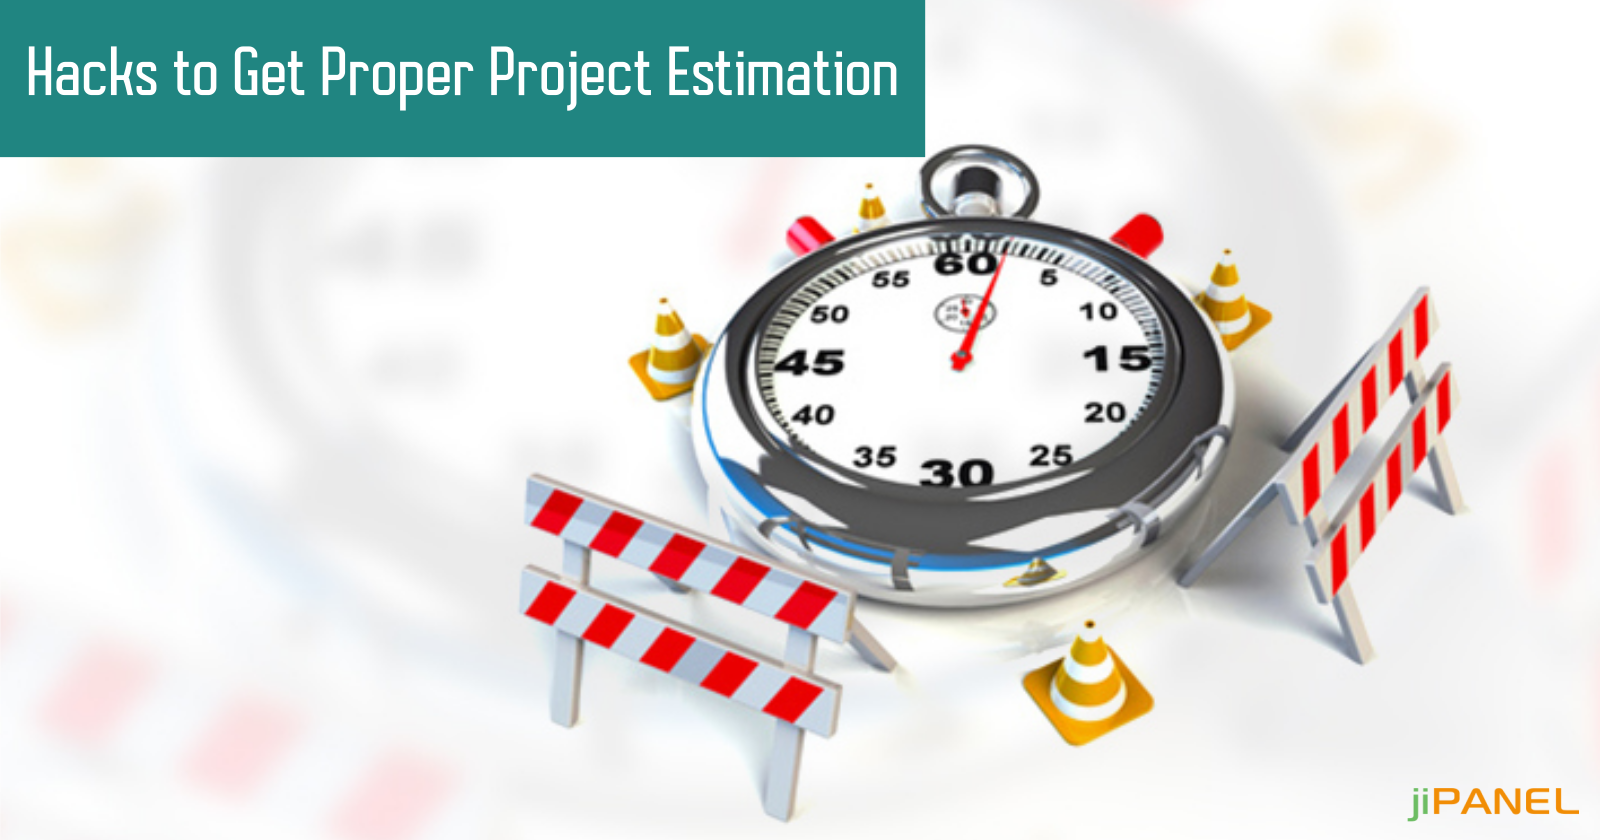 Hacks to Get Proper Project Estimation